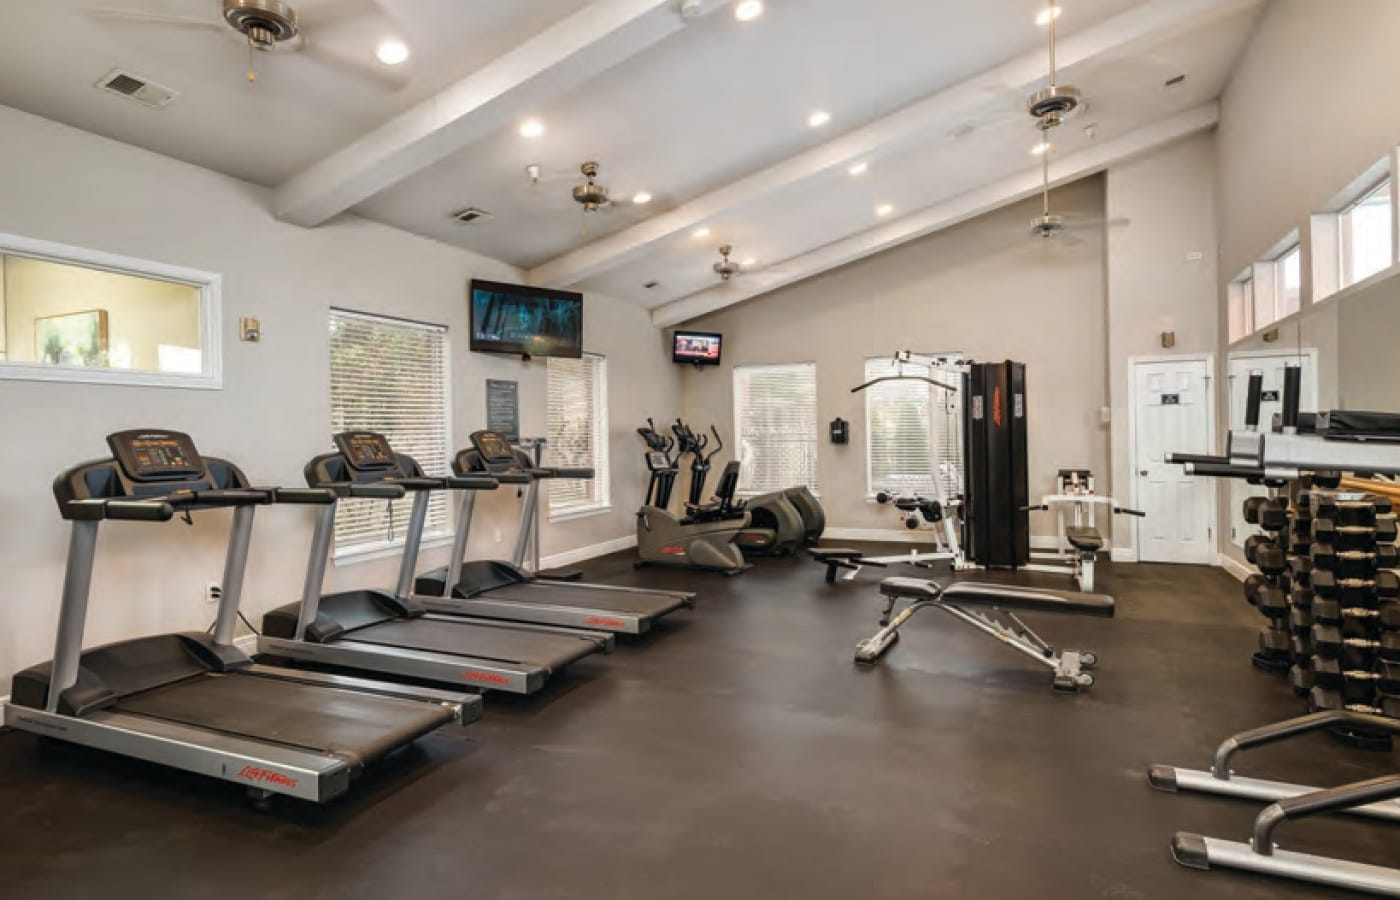 Resident fitness center at Cornerstone Apartments in Independence, Missouri.